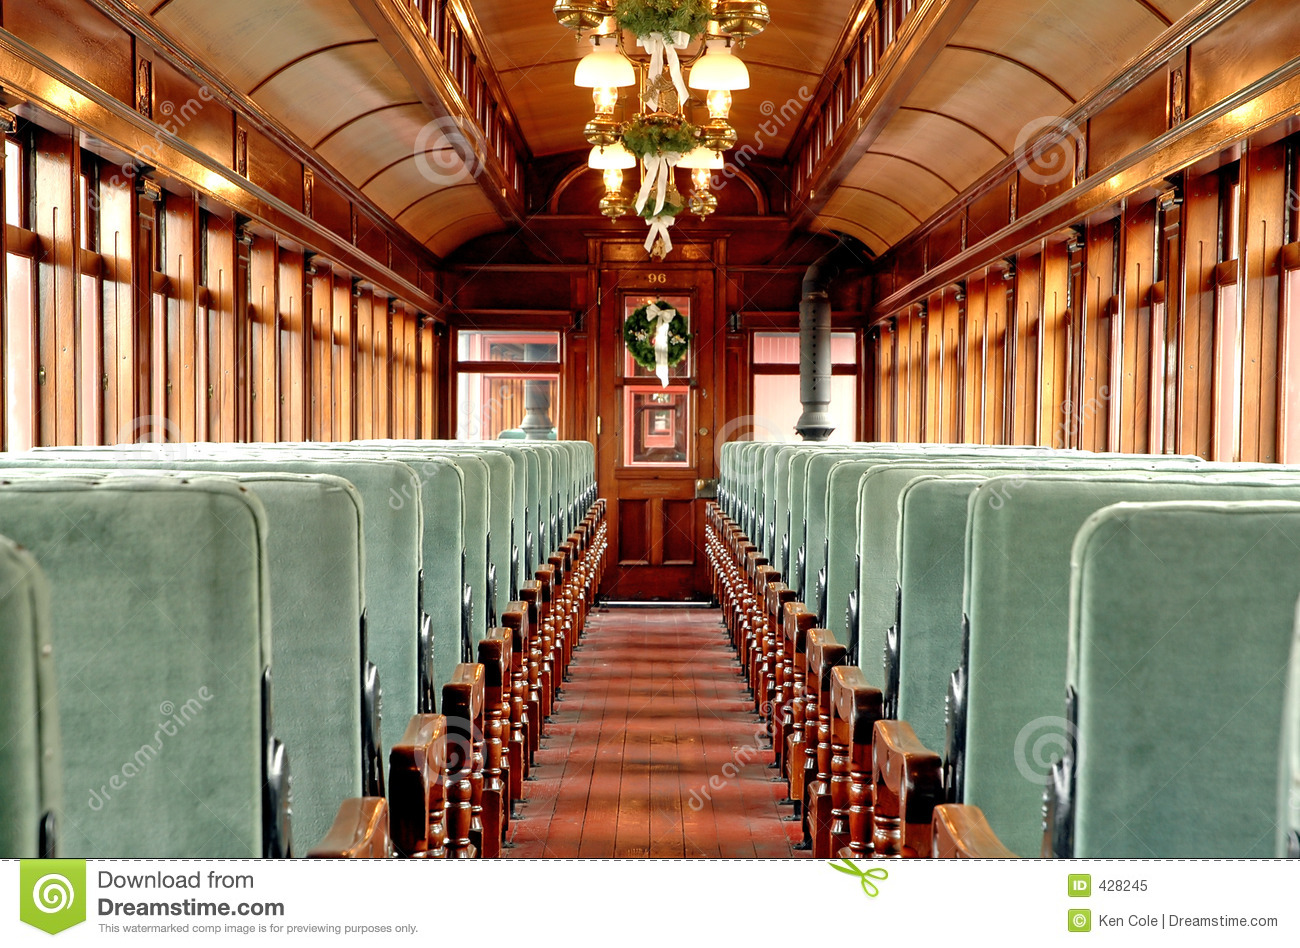 inside an old passenger rail car stock image image 428245. Black Bedroom Furniture Sets. Home Design Ideas